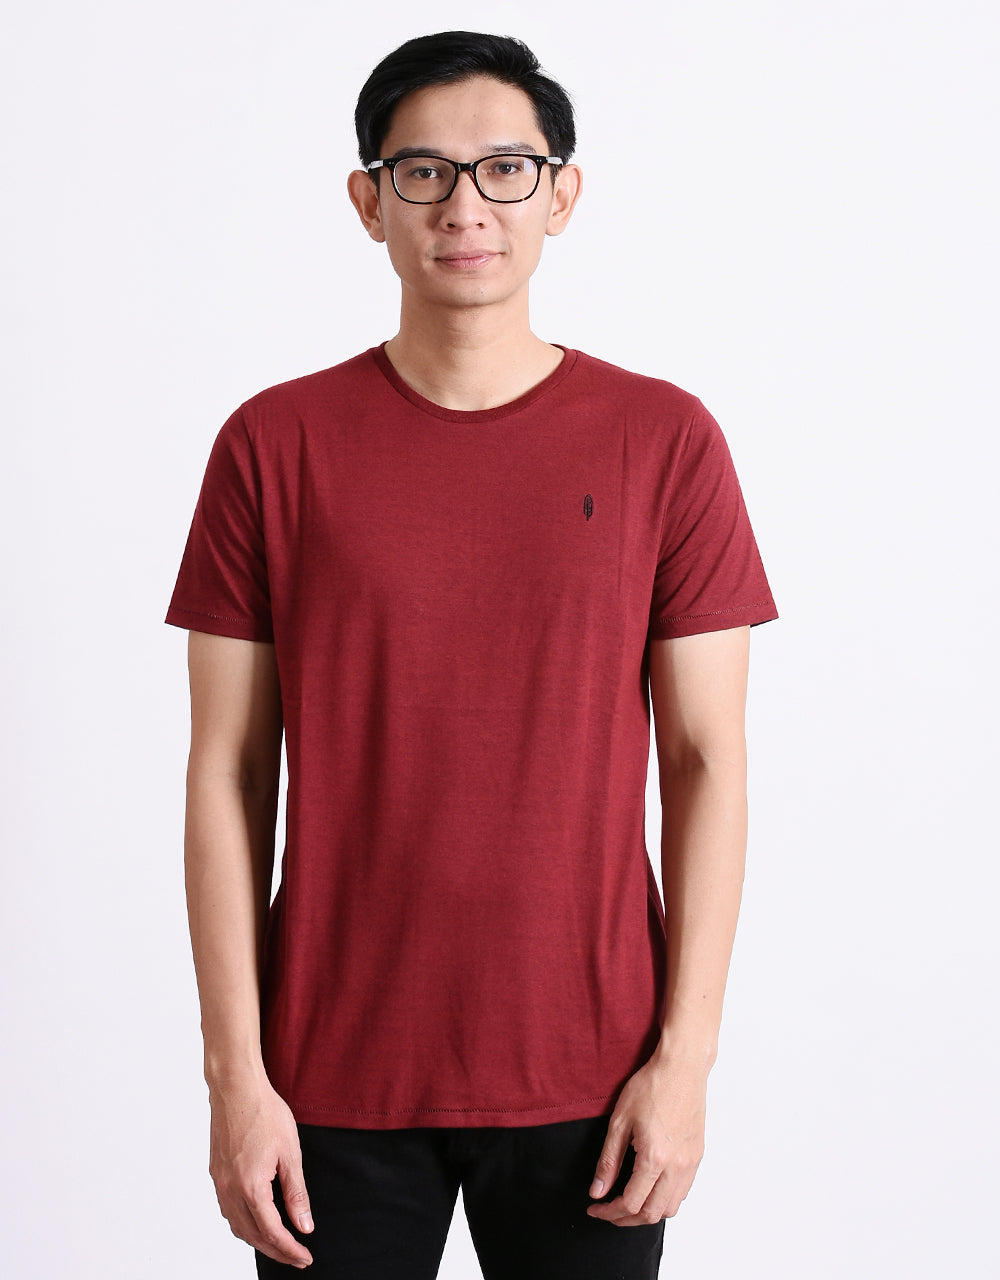 Exude 3 Basic Tees